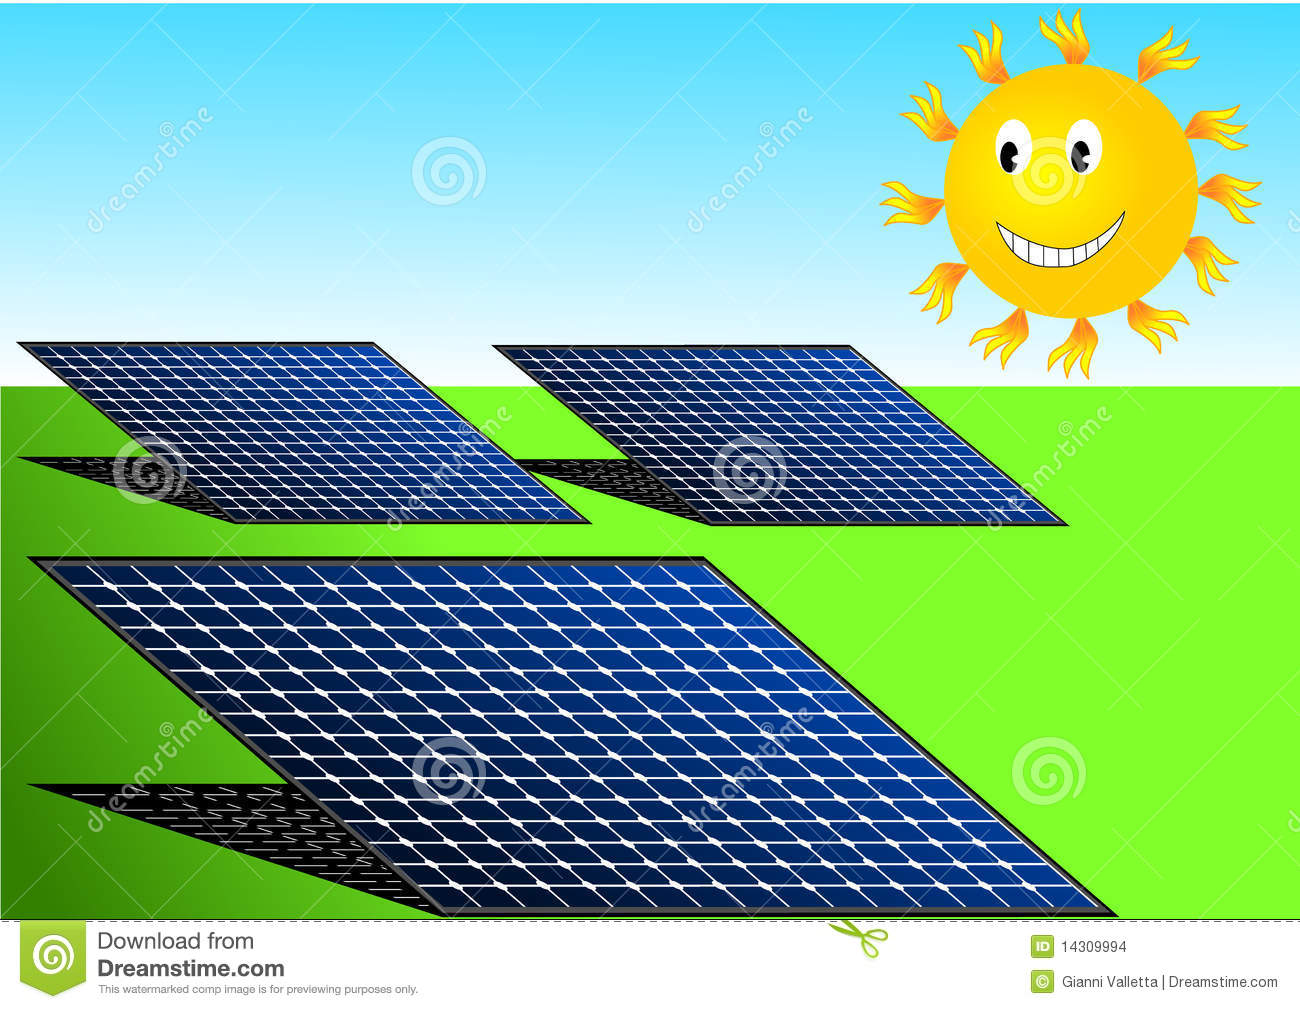 Illustration vector of solar panels and smiling sun that produces ...